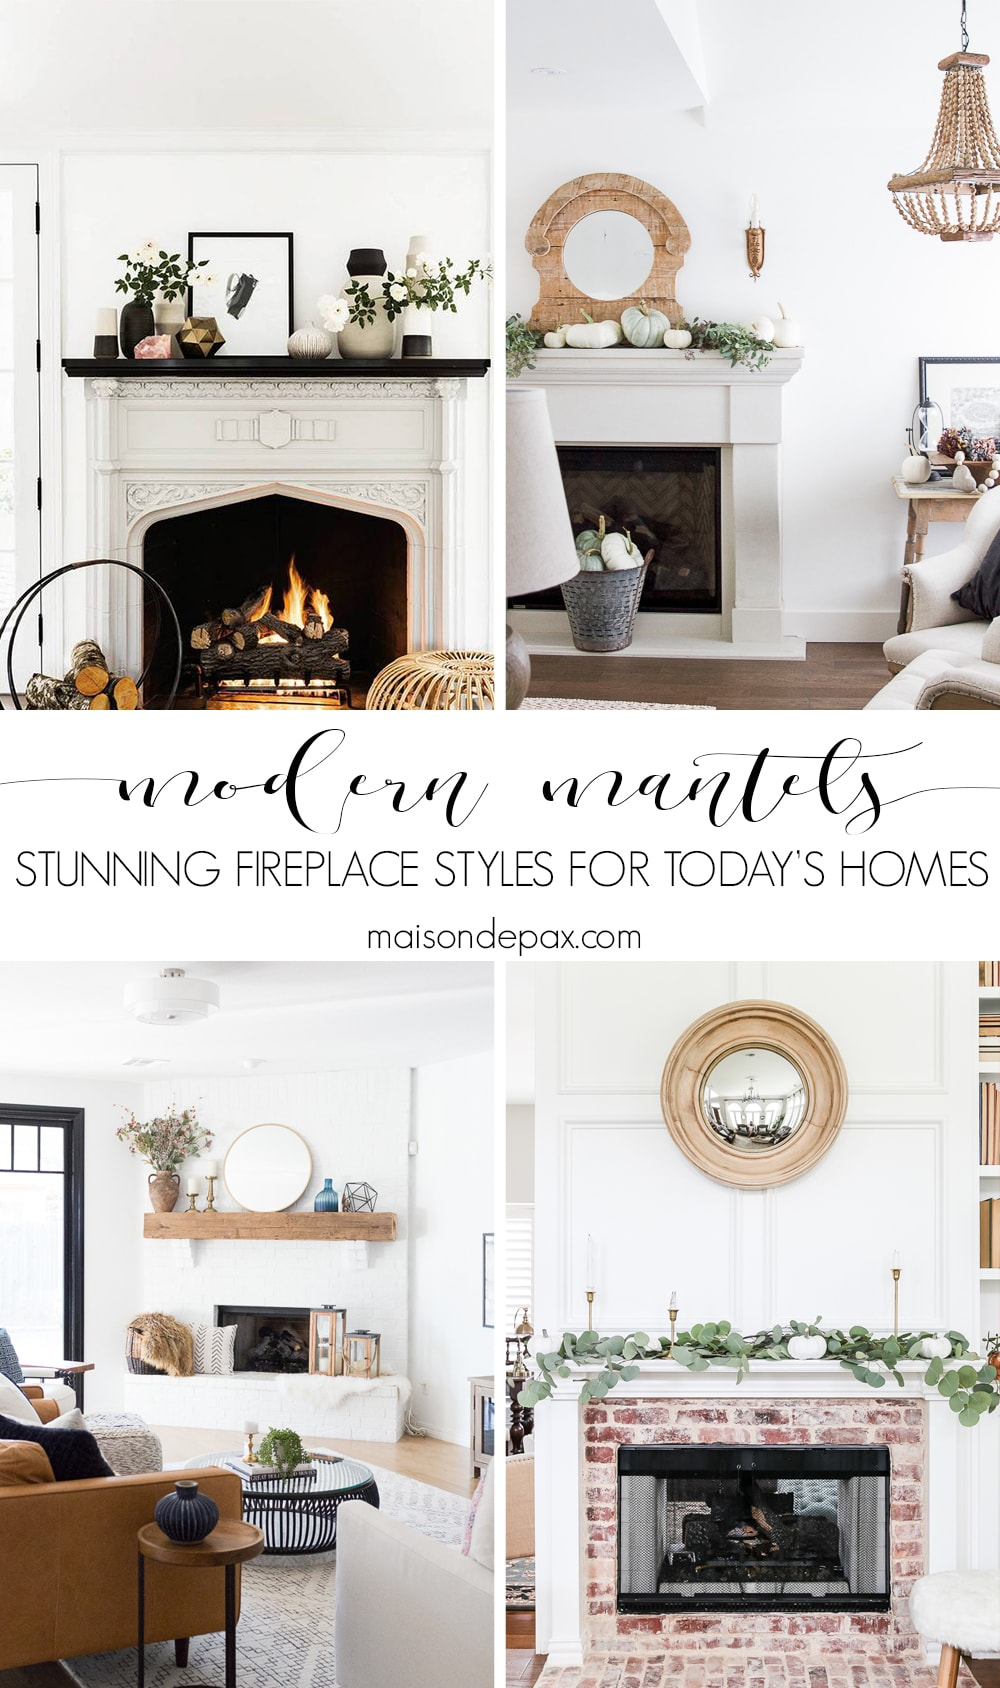 Fireplace Ideas Mantel Styles For Today S Homes Maison De Pax